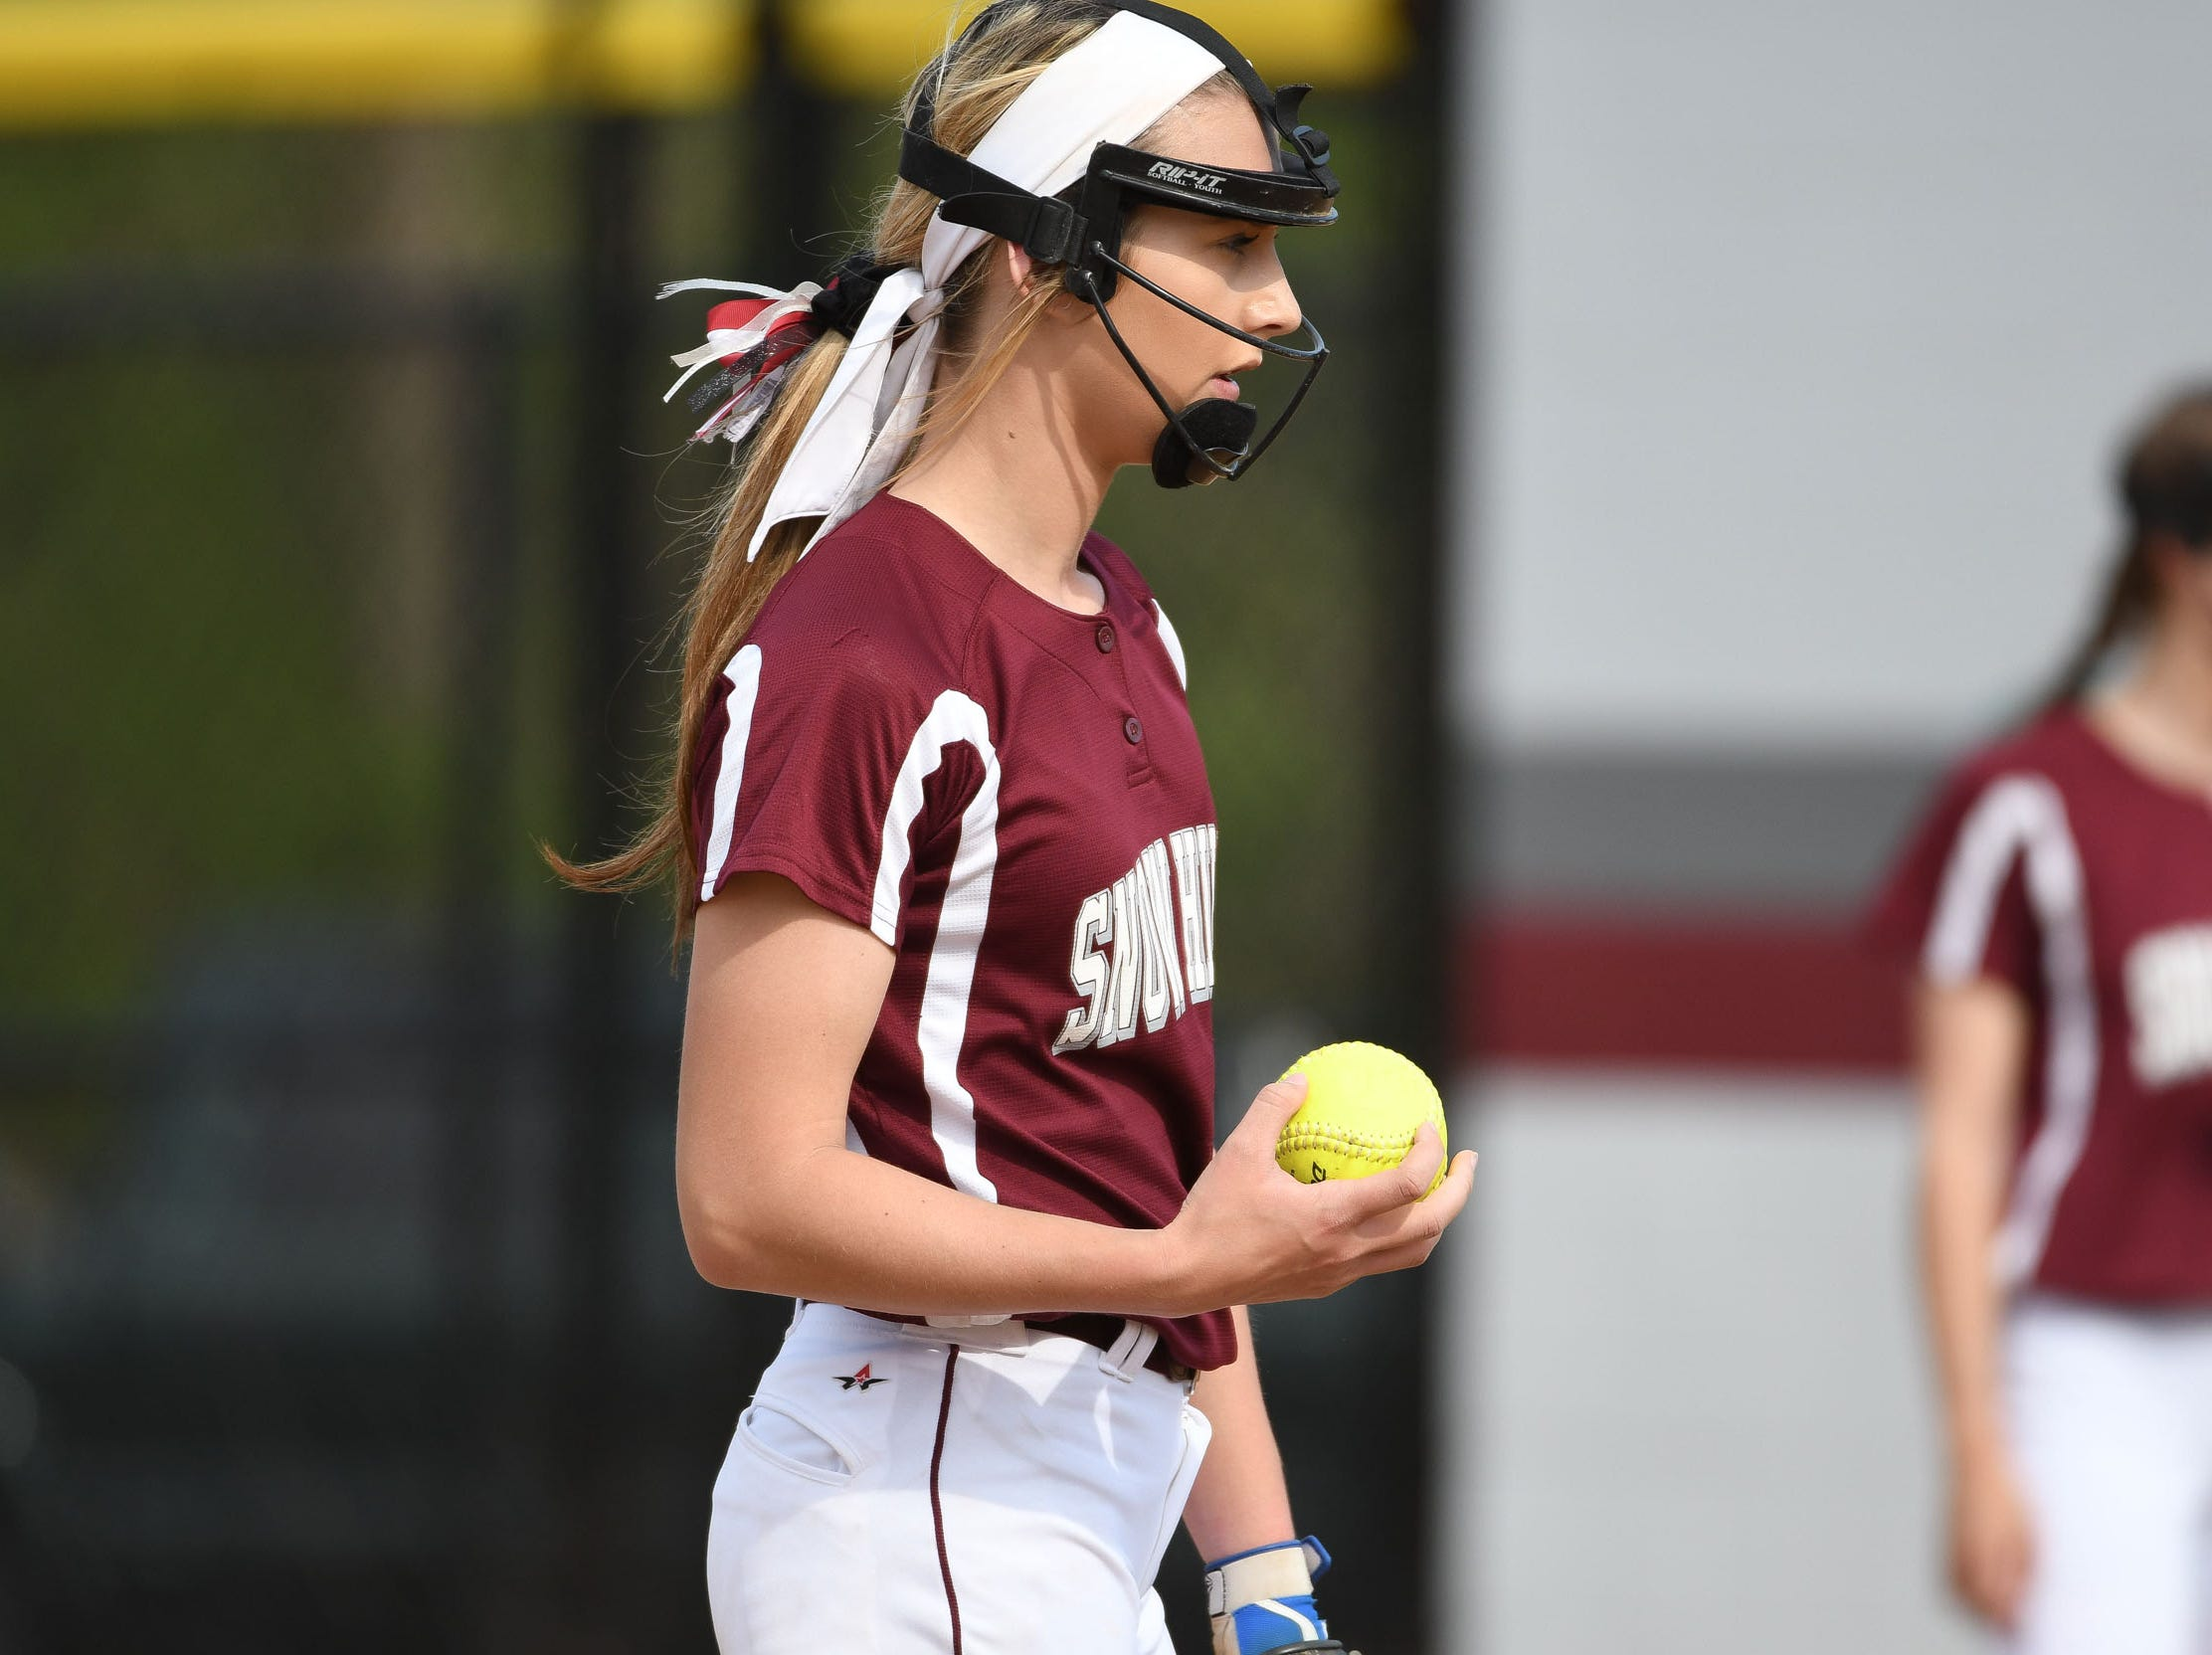 Snow Hill's Lauren Smith on the mound against Mardela on Monday, April 8, 2019 in Snow Hill, Md.